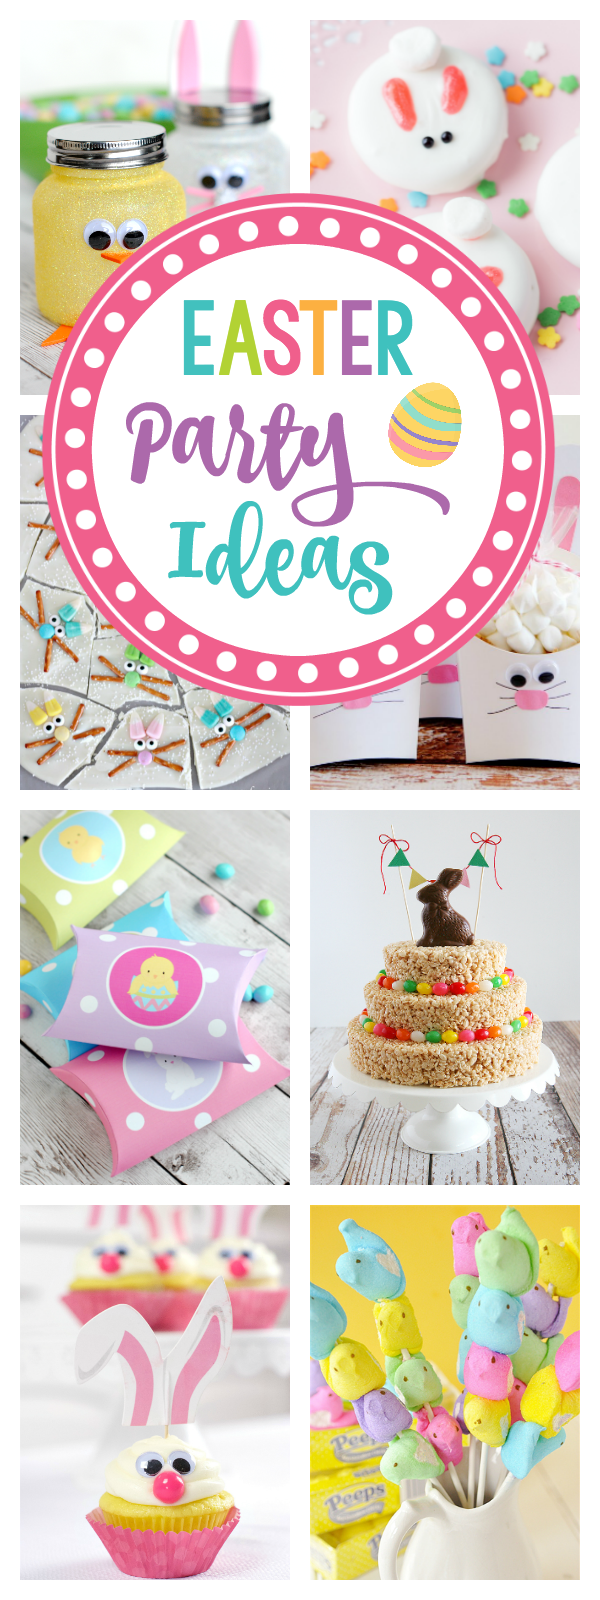 25 Easter Party Ideas for Kids-Games, Decorations, Food, Activities and Favors